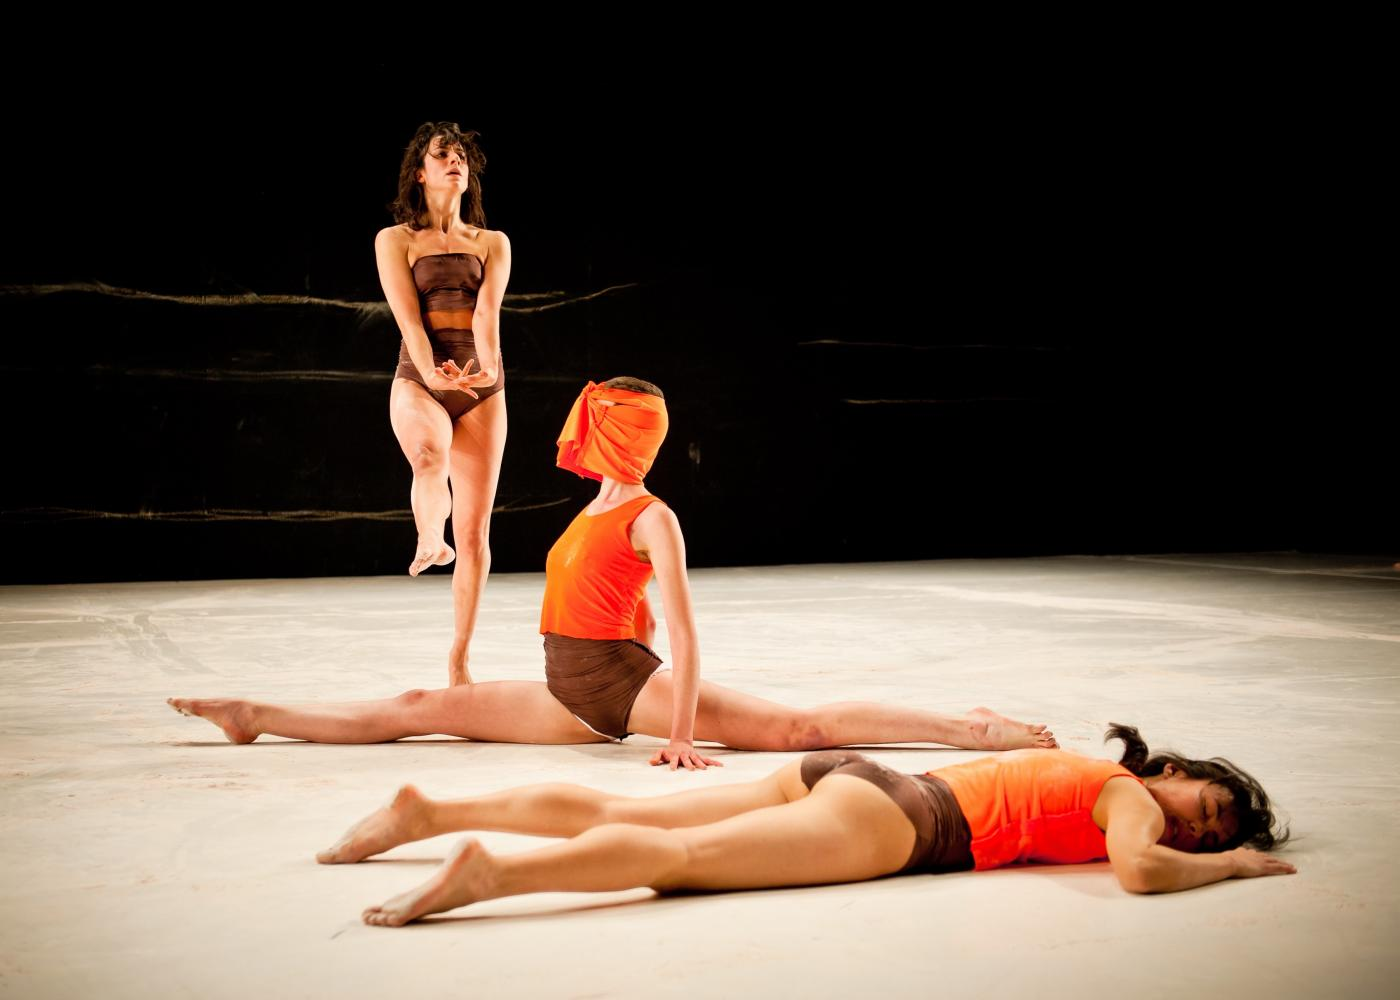 On a stage, three performers dance. Two of the performers wear bright orange costumes and do floor work. One hops in a red leotard.